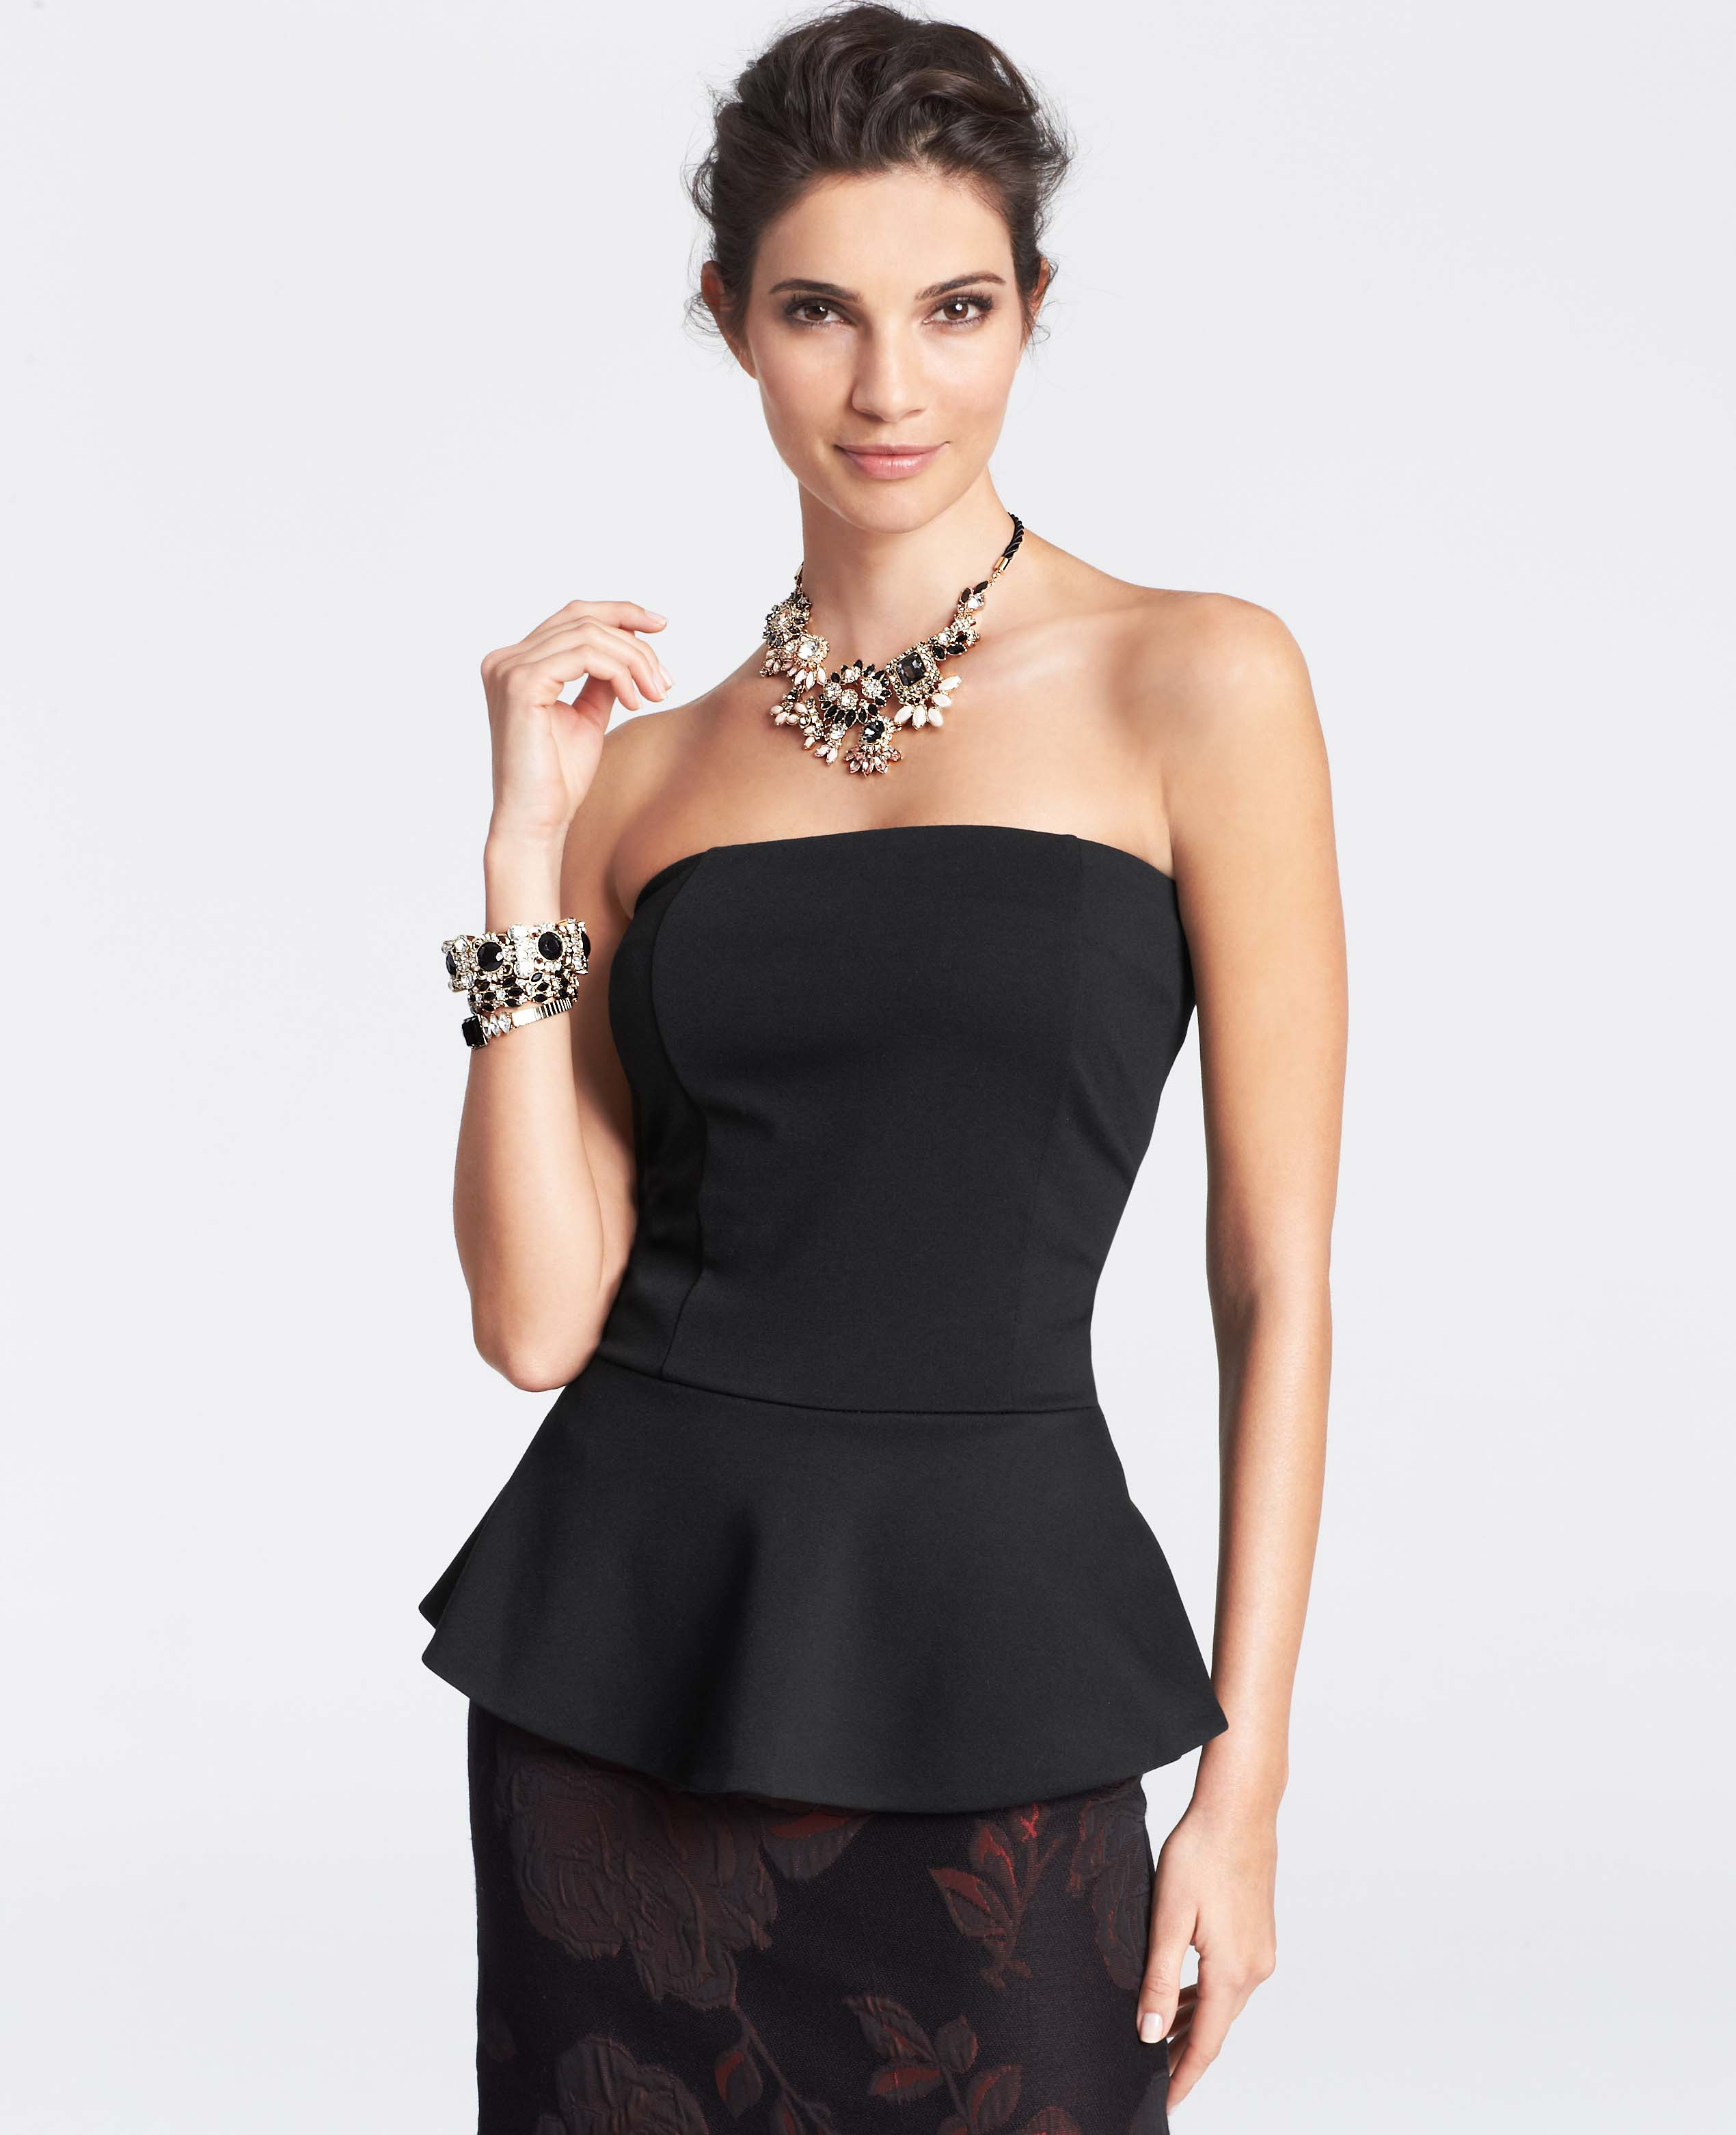 Peplum Tank Tops. Showing 48 of results that match your query. Search Product Result. Women's Plus Size Short Sleeves Knot Front Peplum Top Black 2X. Reduced Price. Product Image. City Chic Plus Size Mint Strapless Peplum Top XXLW. Product Image. Price $ Product Title.